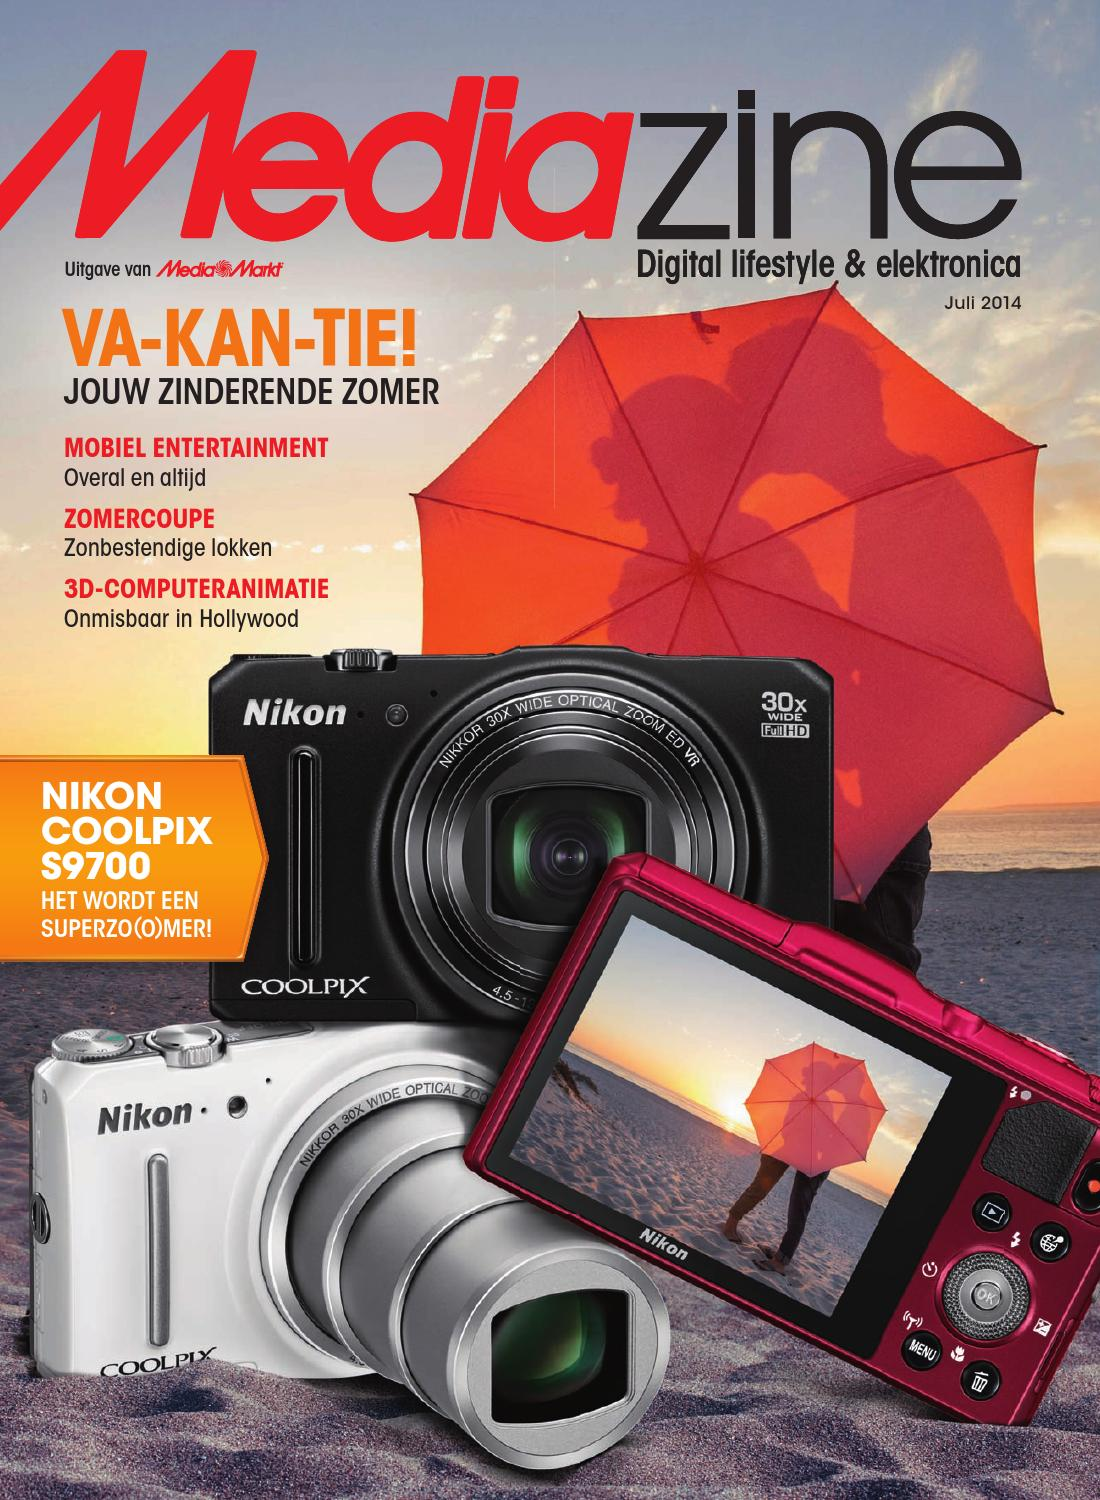 Mediazine Nederland / 2012, 12 - December by iMediate - issuu